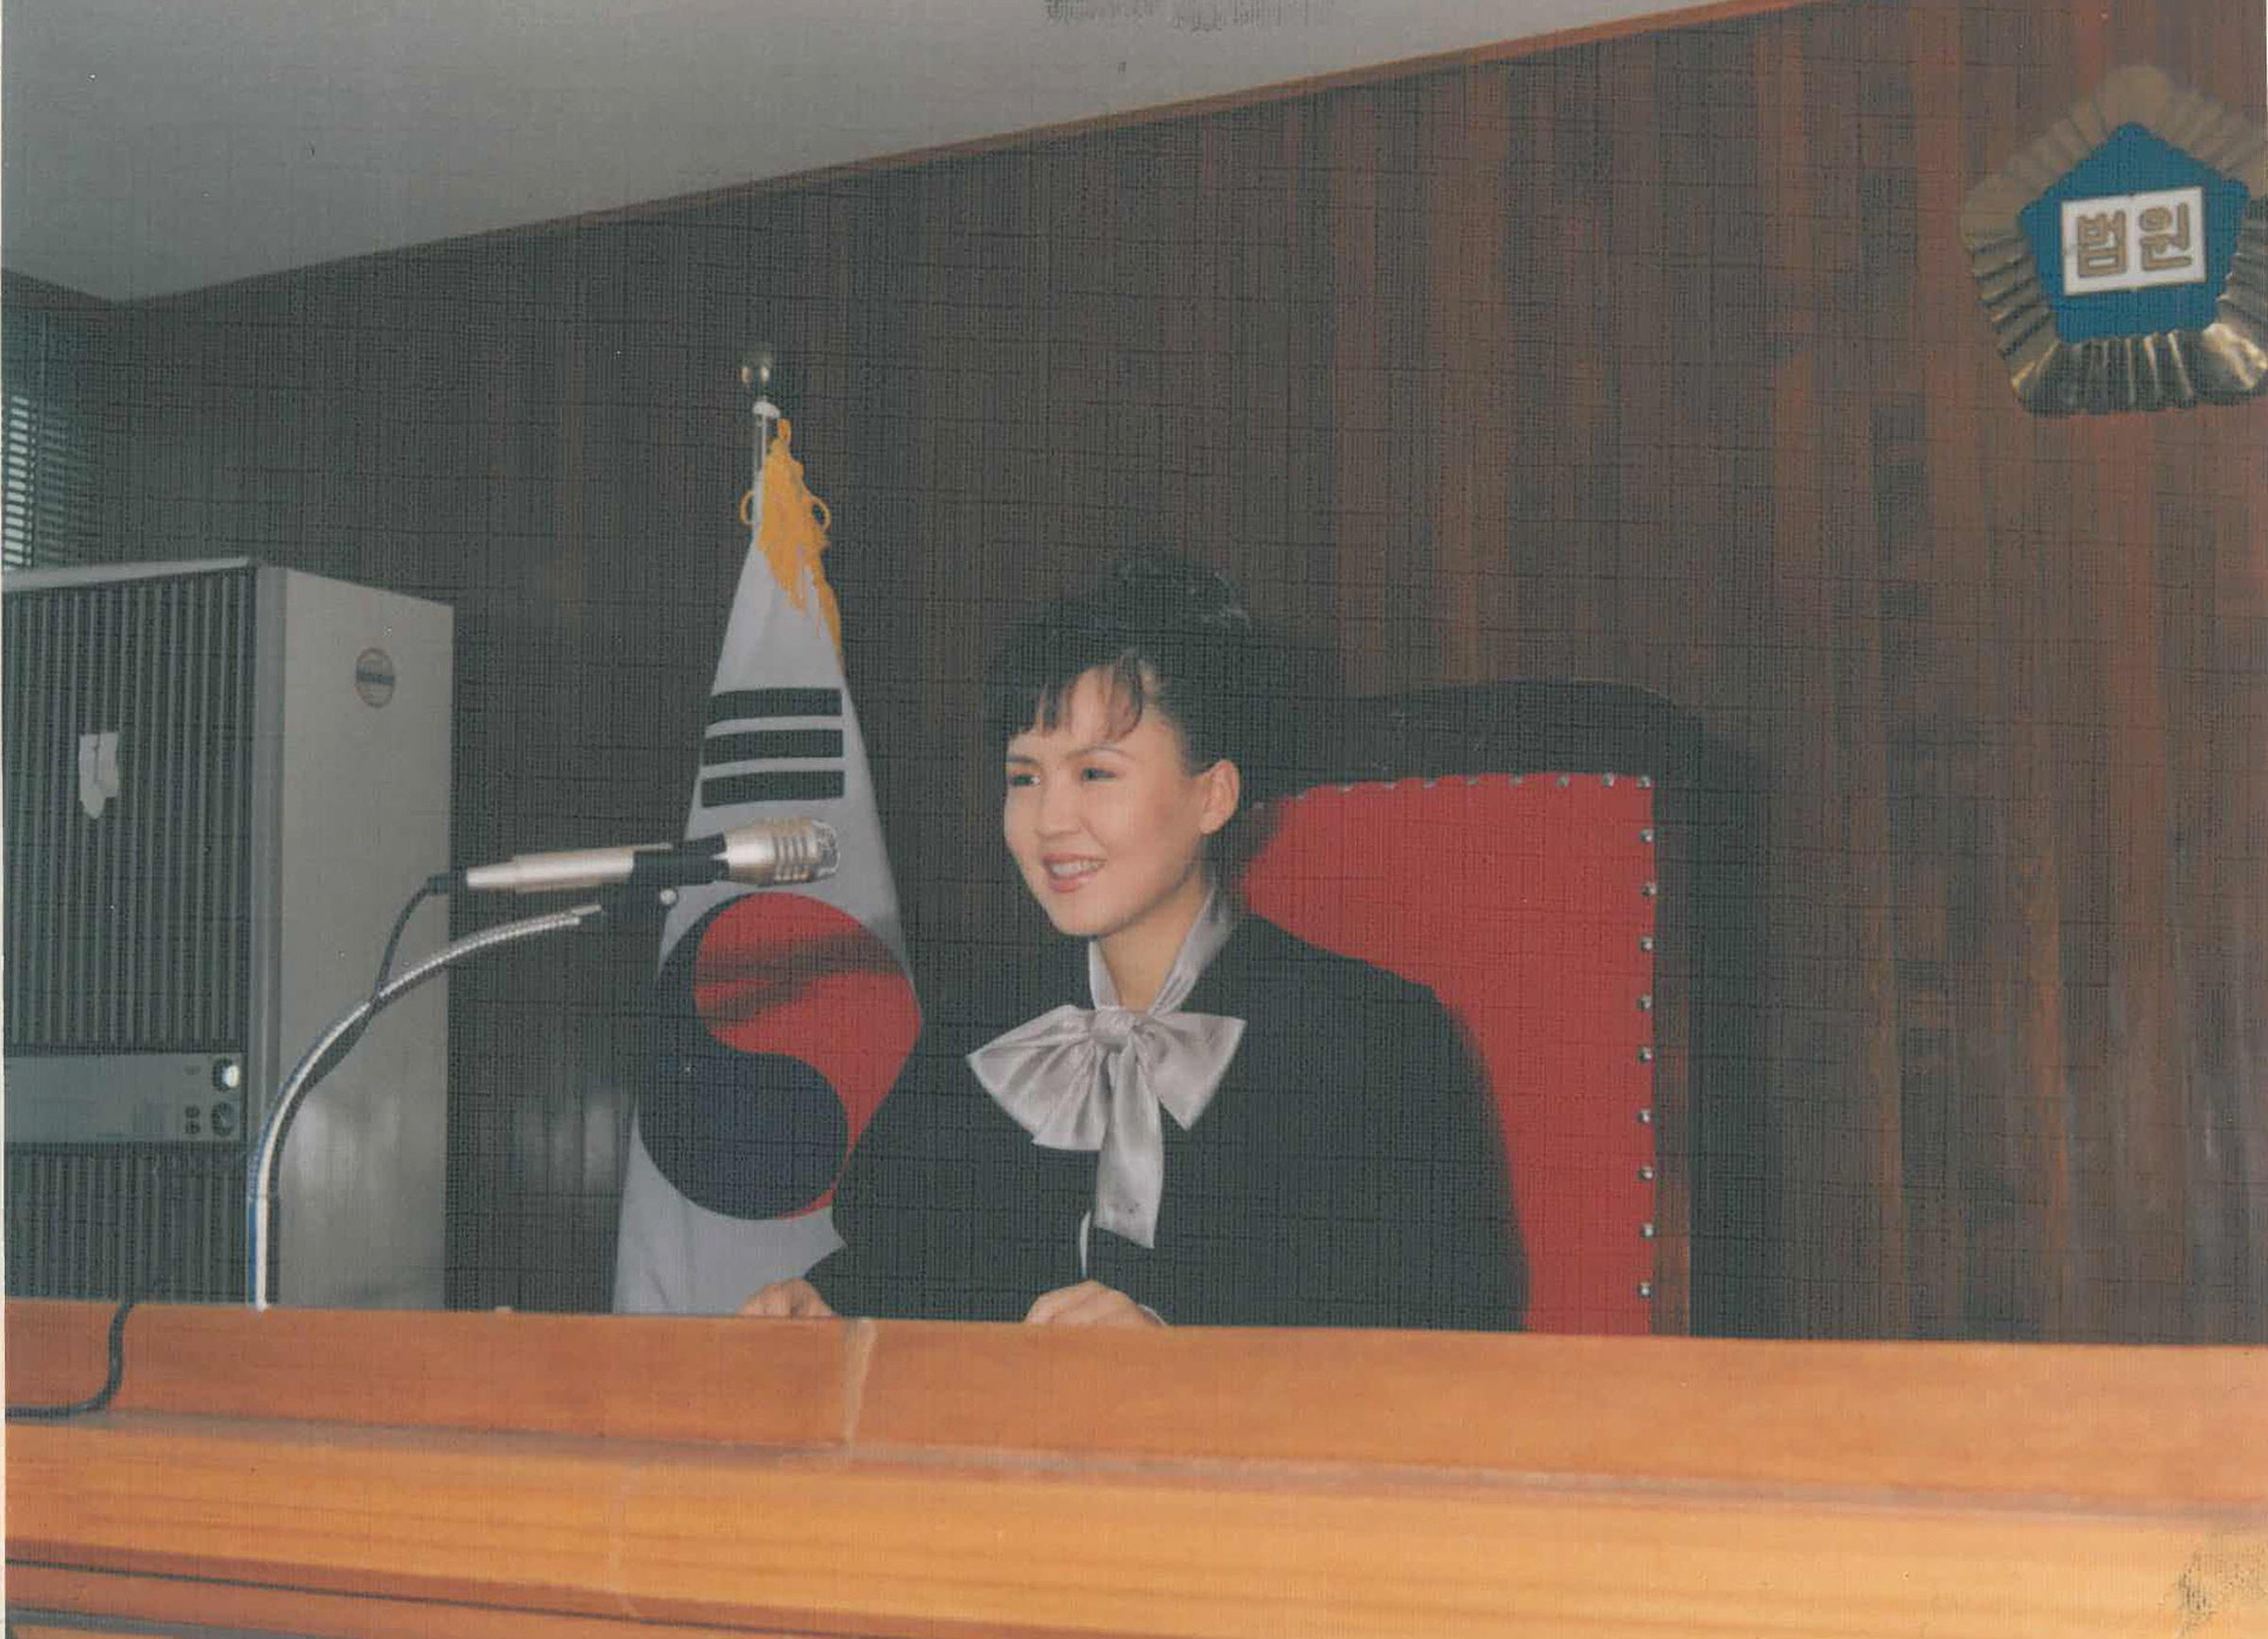 Lee working as a judge in the 1990s in Seoul